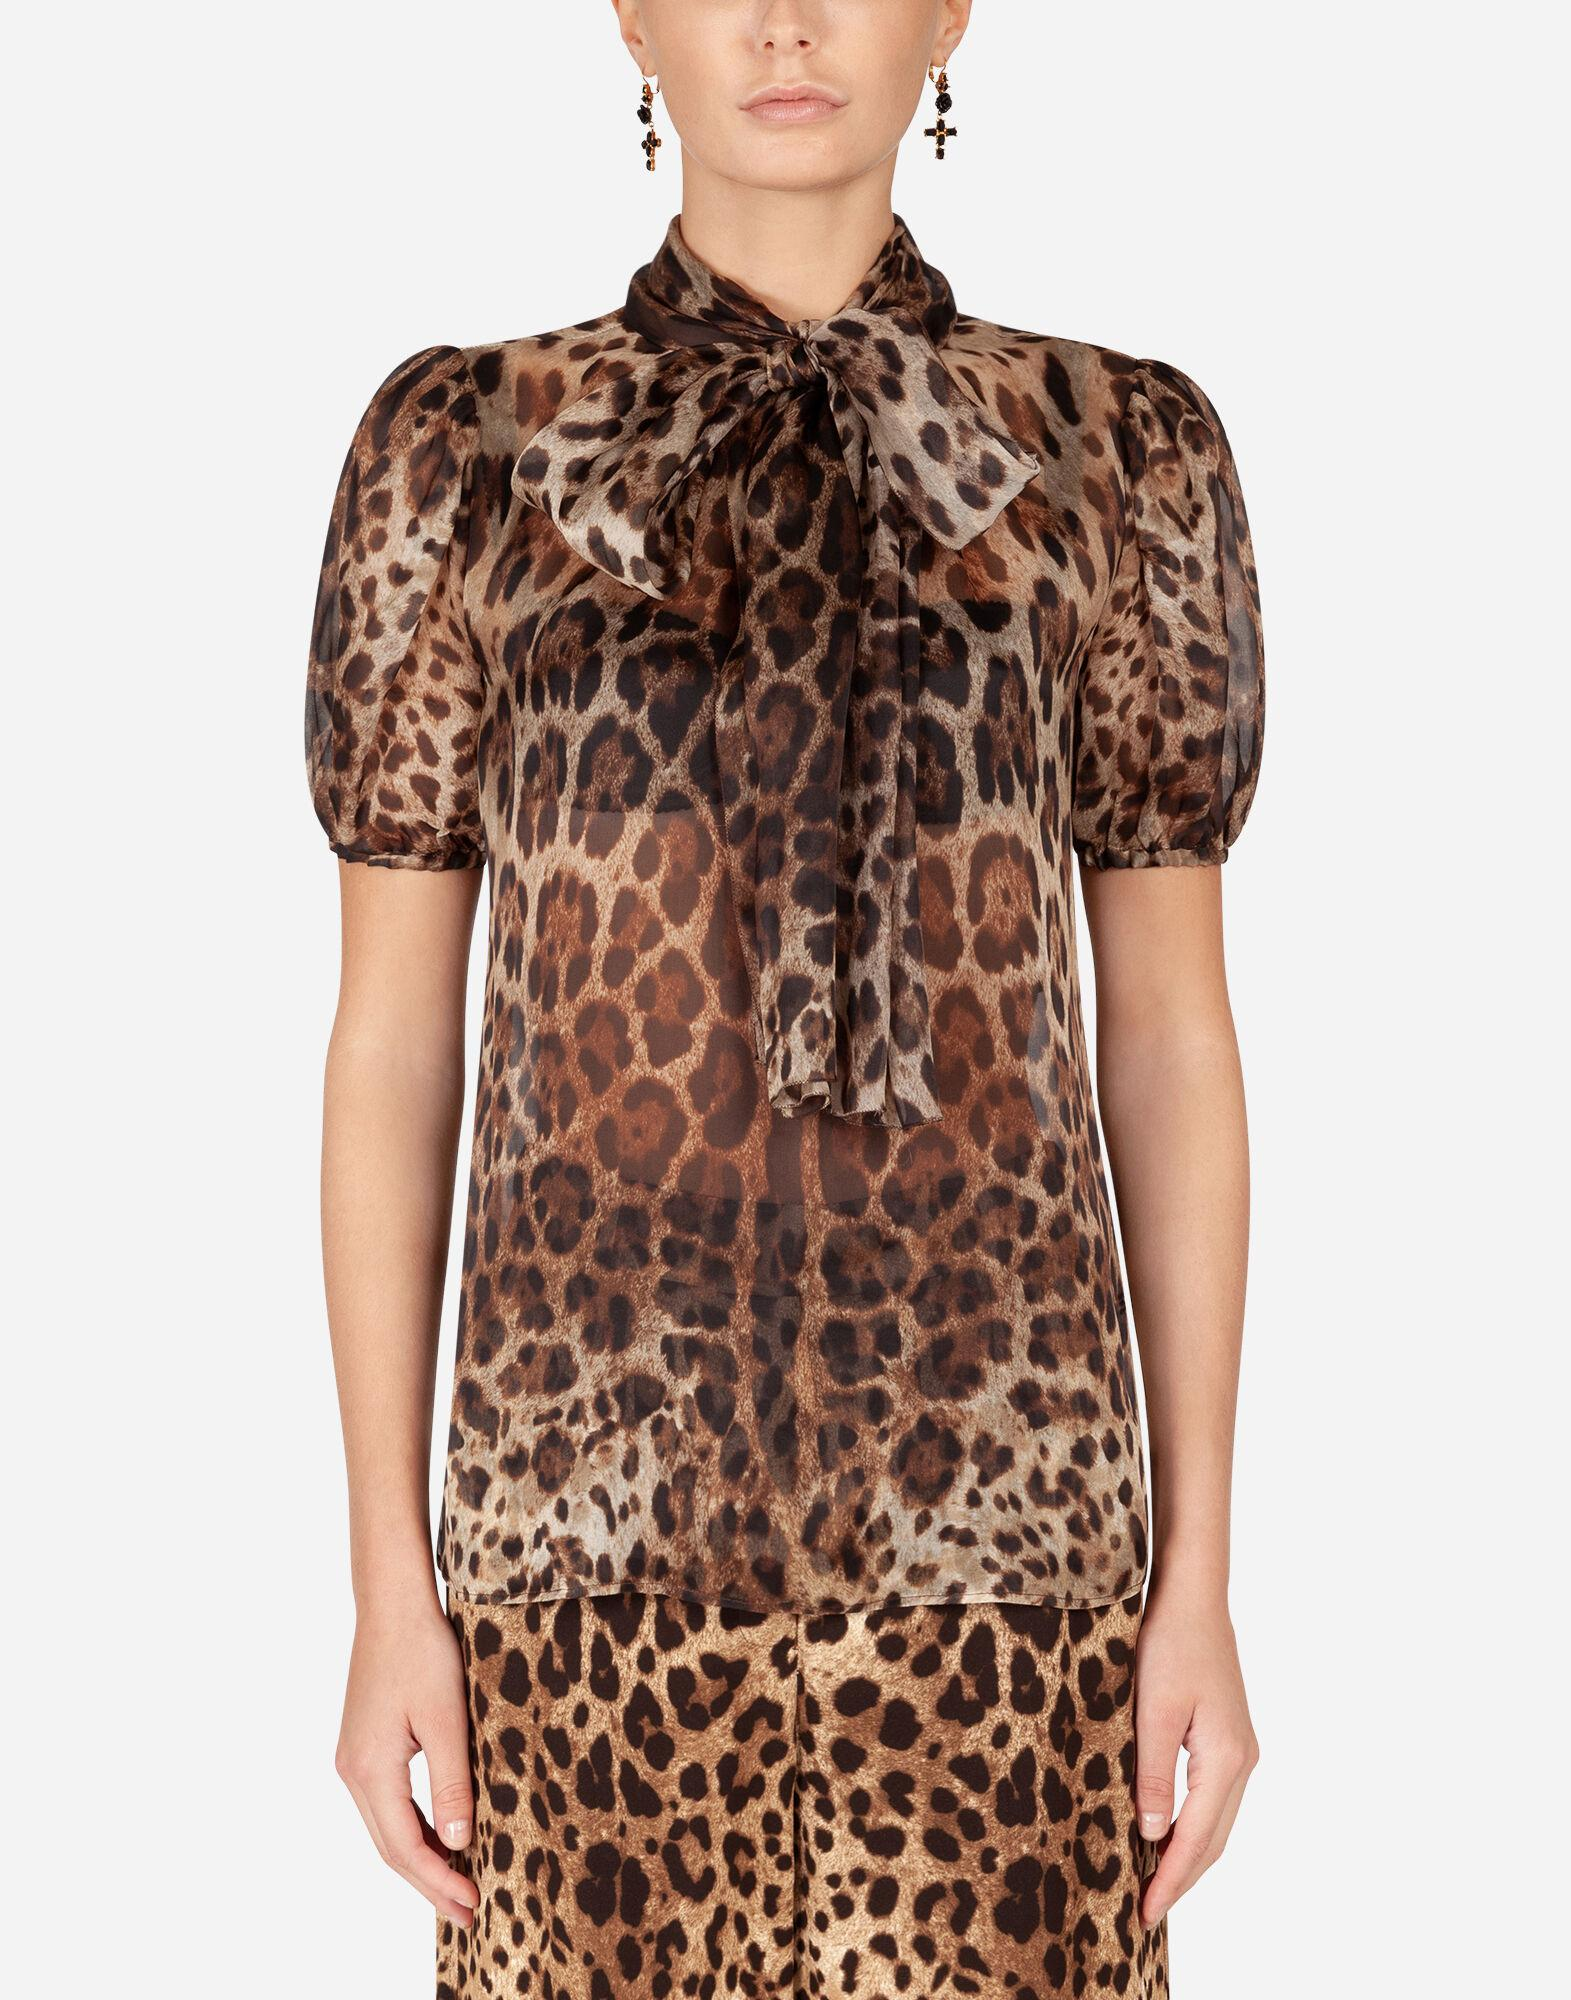 Leopard-print organza blouse with pussy bow